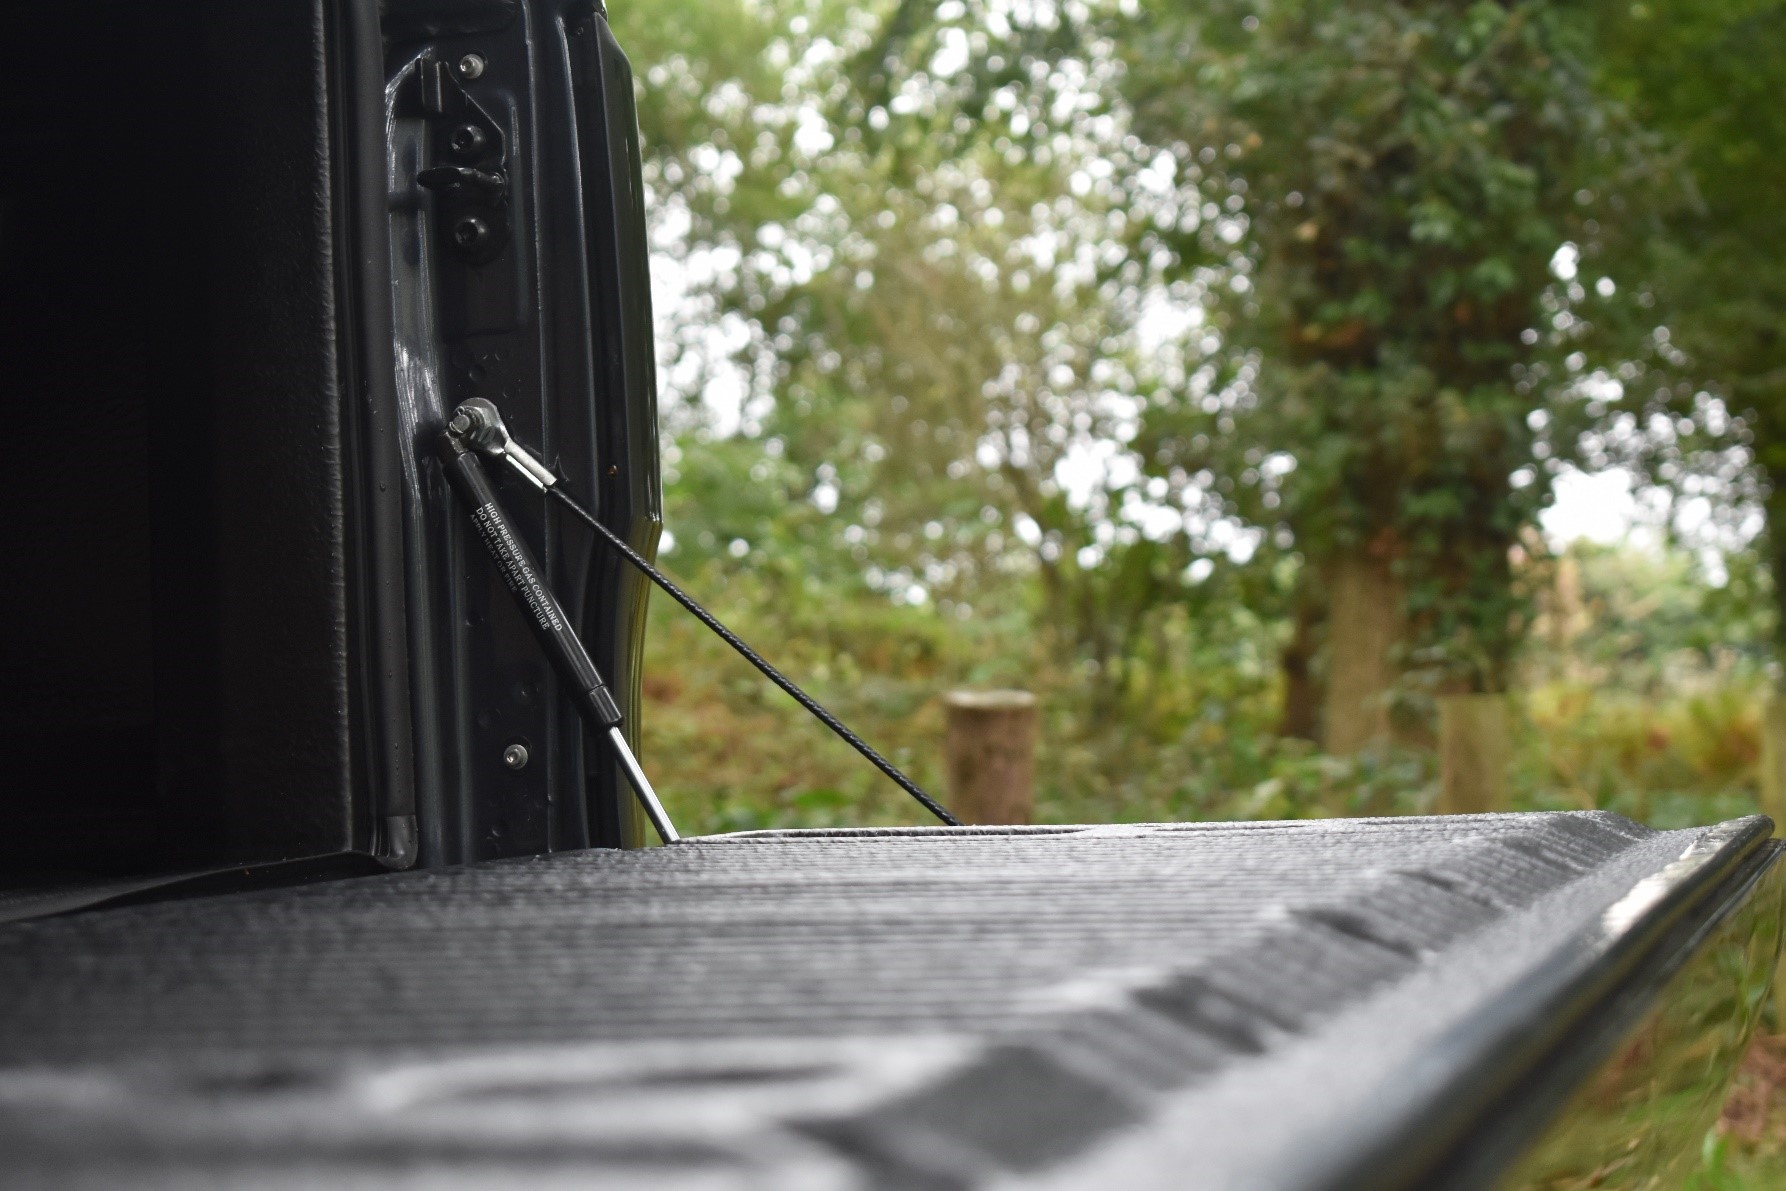 Ford Ranger tuning and styling tailgate damper gas strut